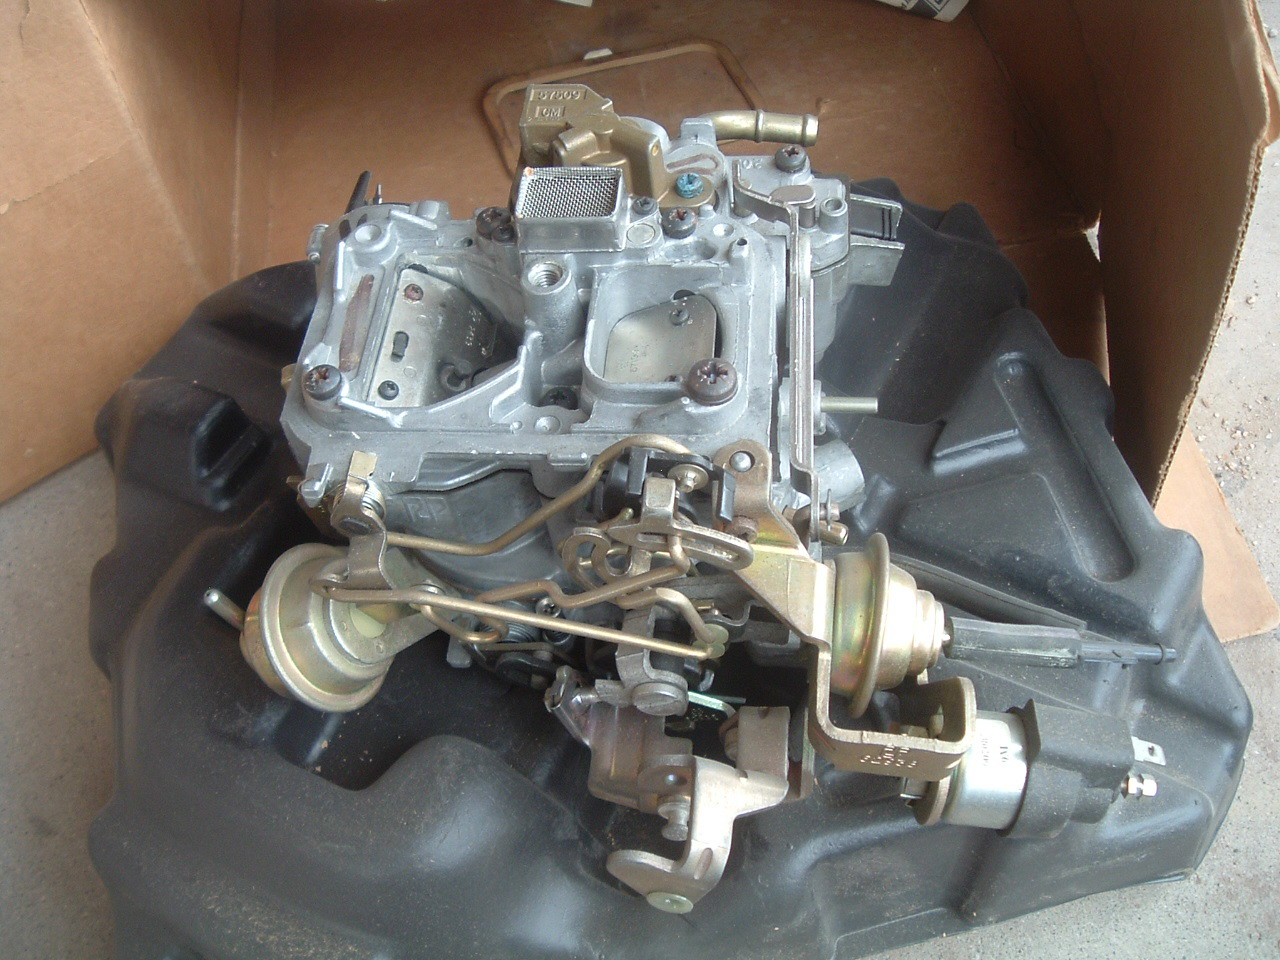 Search Results 1980 Ford Bronco Carburetor View Product1979 Chevrolet Rochester 2 Barrel 28 Engine New Gm 17059768 Z